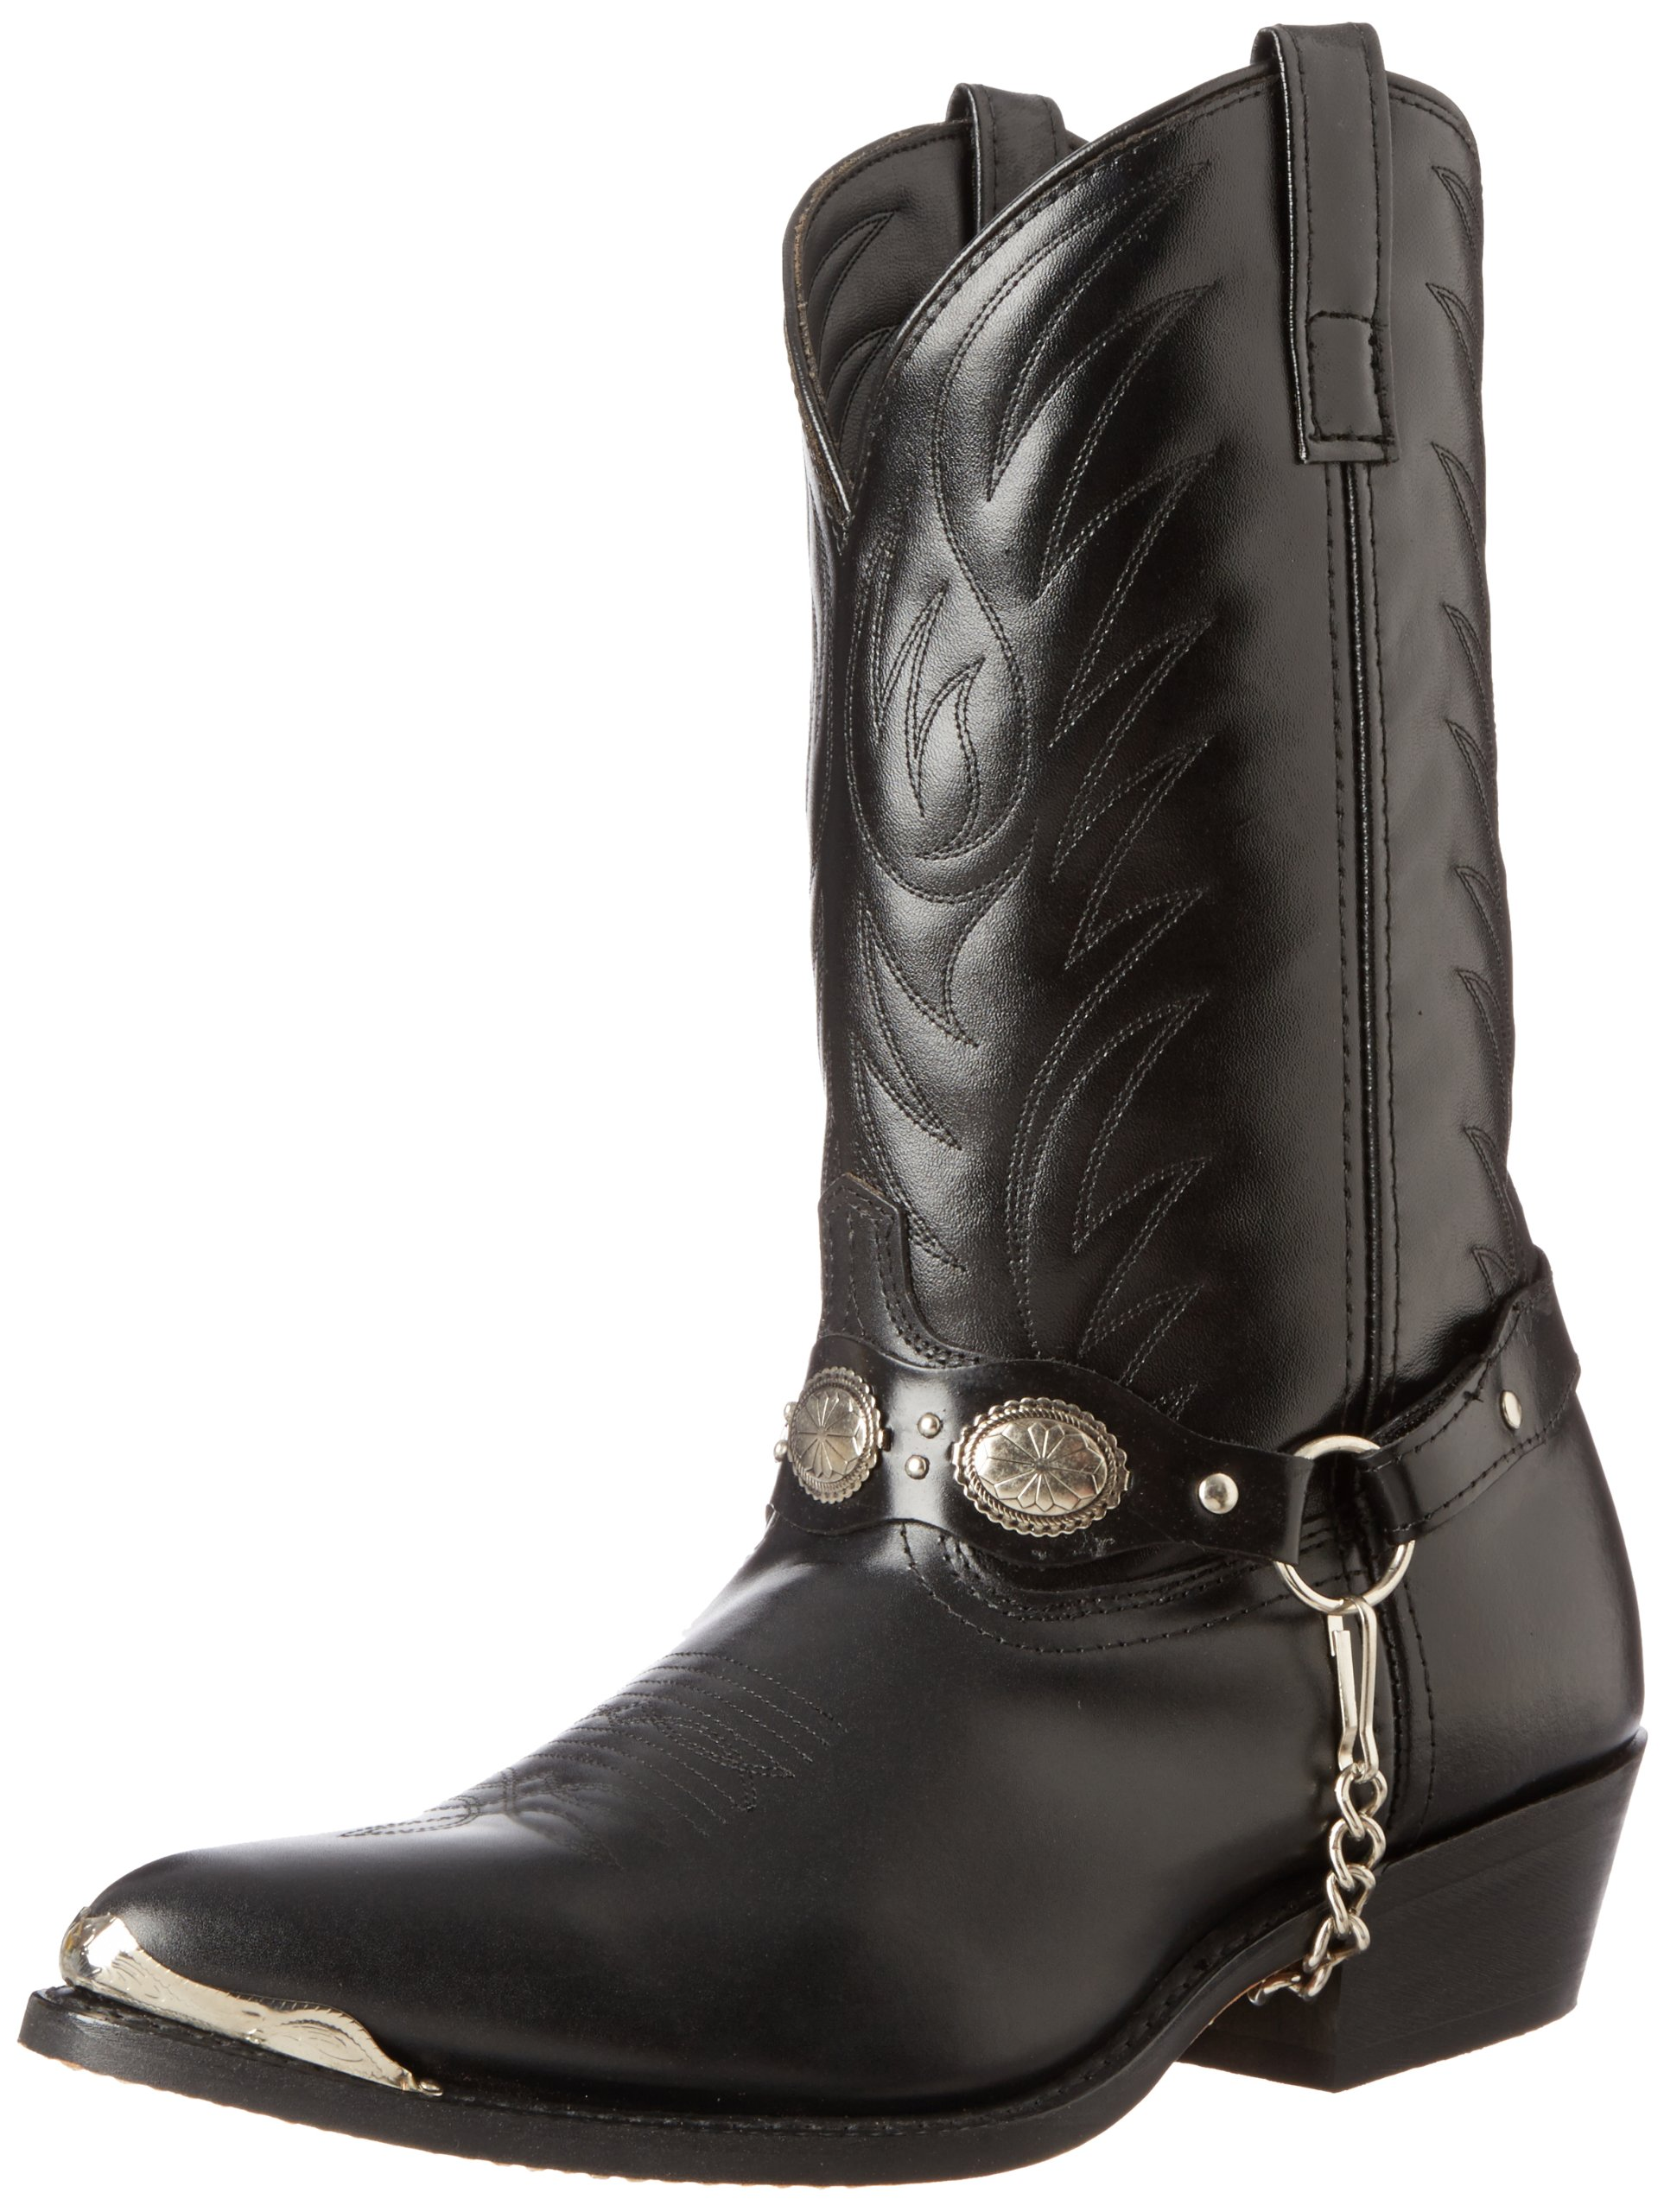 Laredo Men's Tallahassee Western Boot,Black,10.5 D US by Laredo